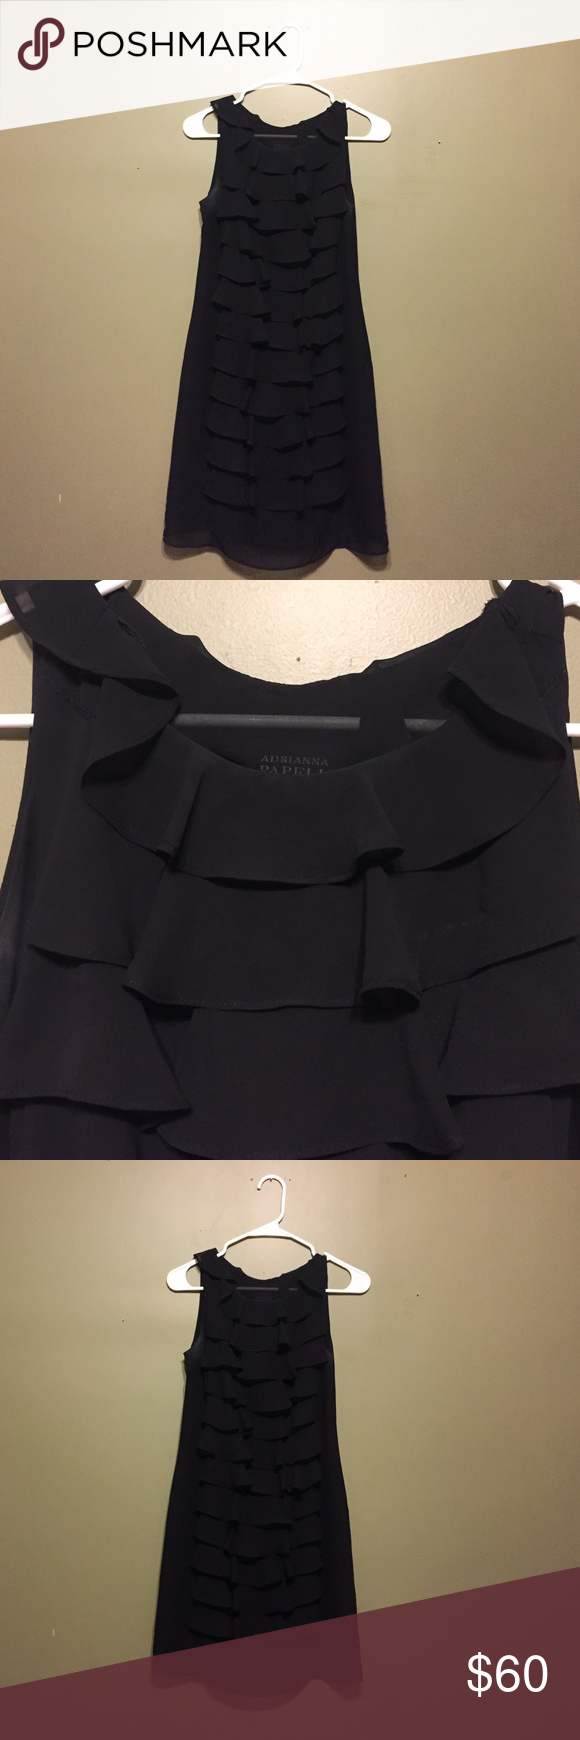 Adrianna Papell Sleeveless Ruffle Dress Adrianna Papell Sleeveless Ruffle Dress in black. Purchased from Nordstrom and worn 3x. Great condition! Size 4. Adrianna Papell Dresses